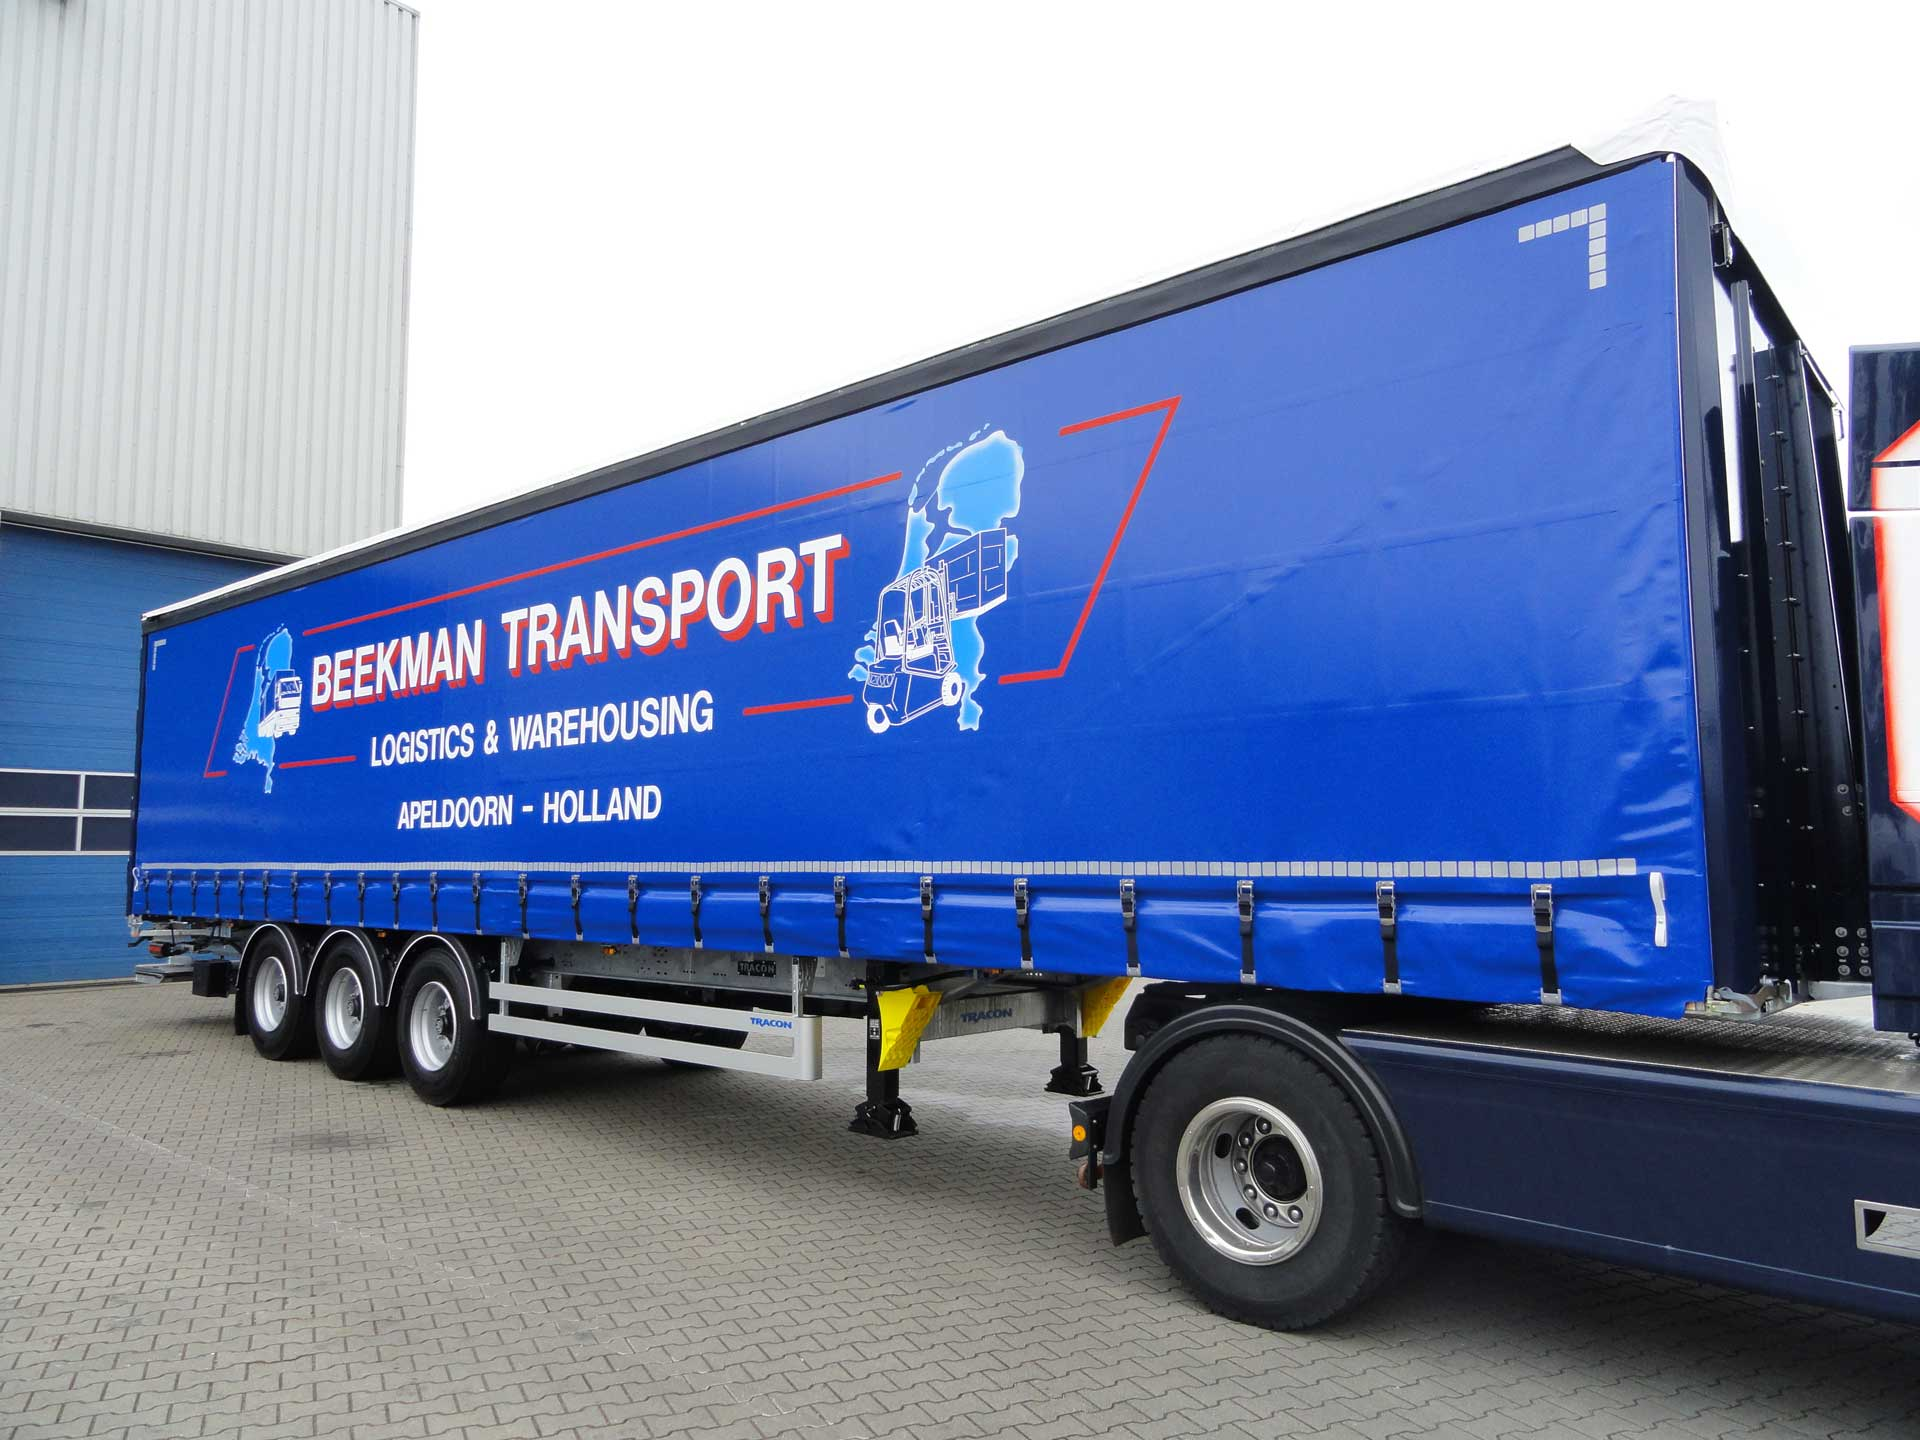 Beekman Transport by InfiniShield